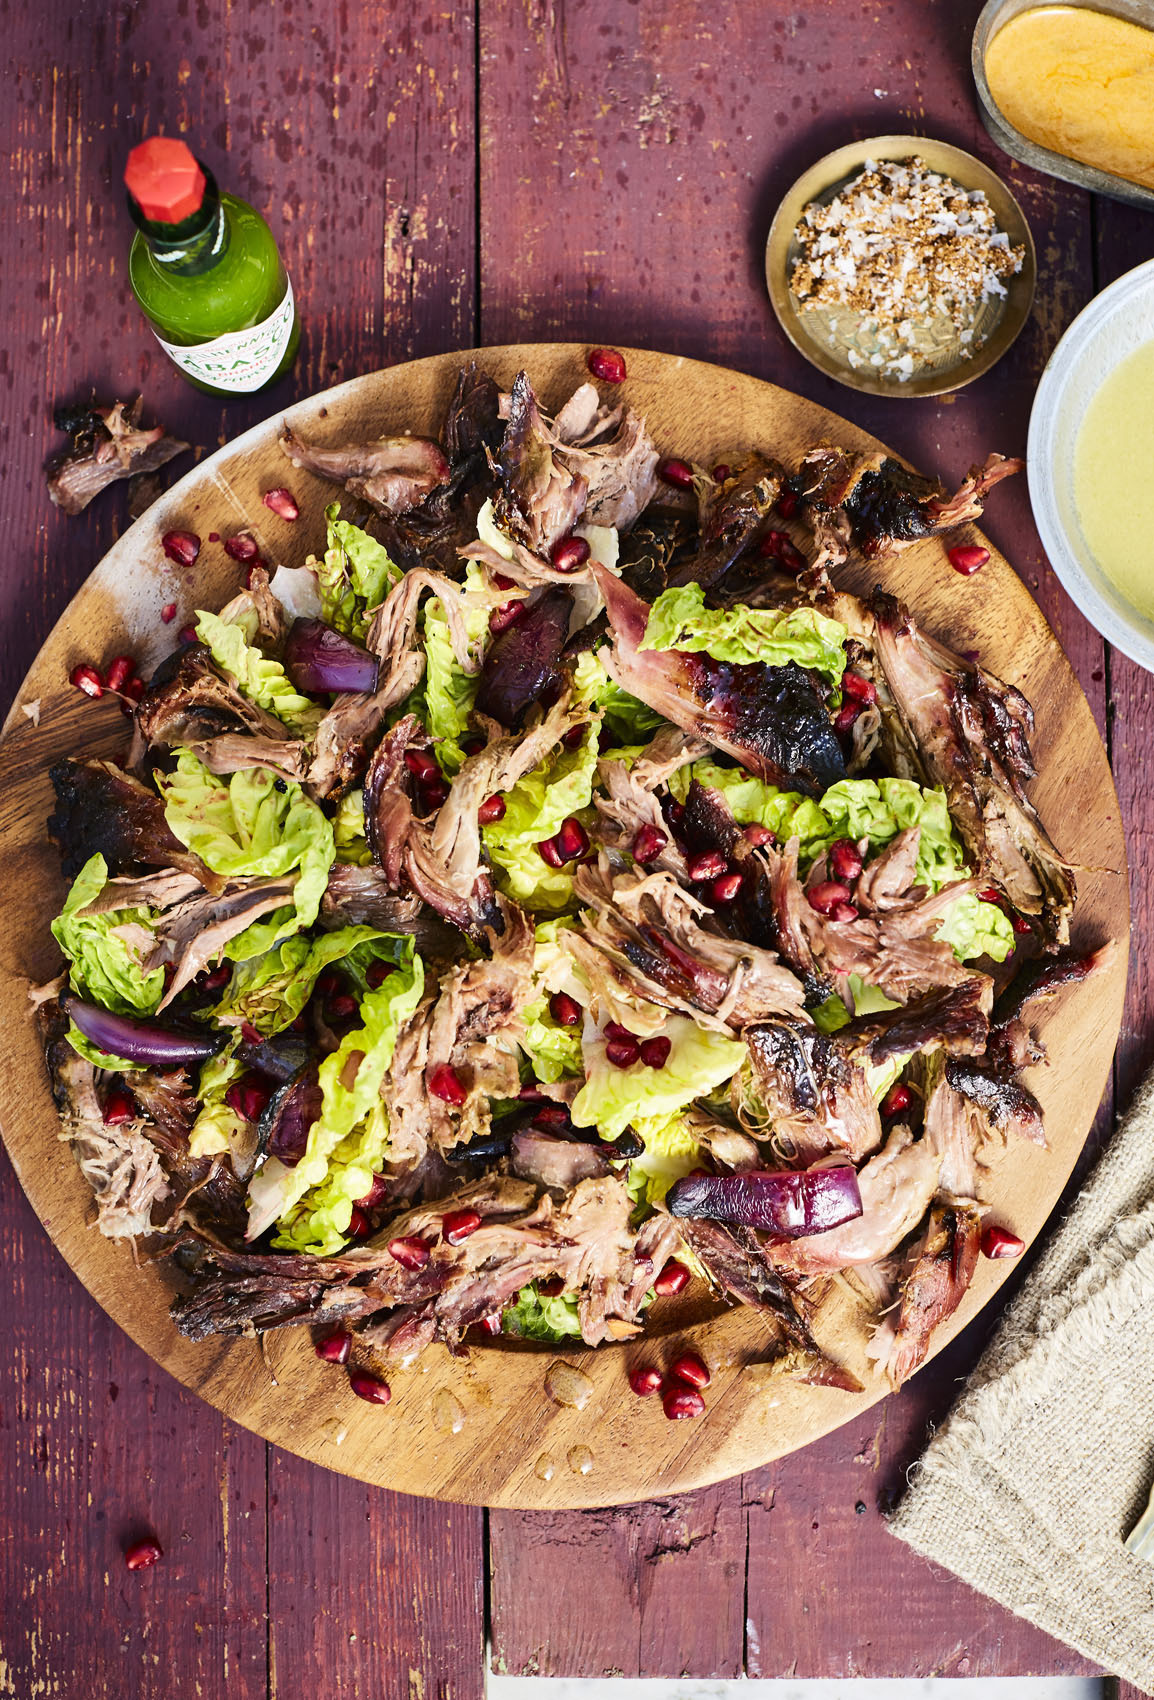 SteveRyan_Photographer_Food_BBQLamb_Tabasco_48